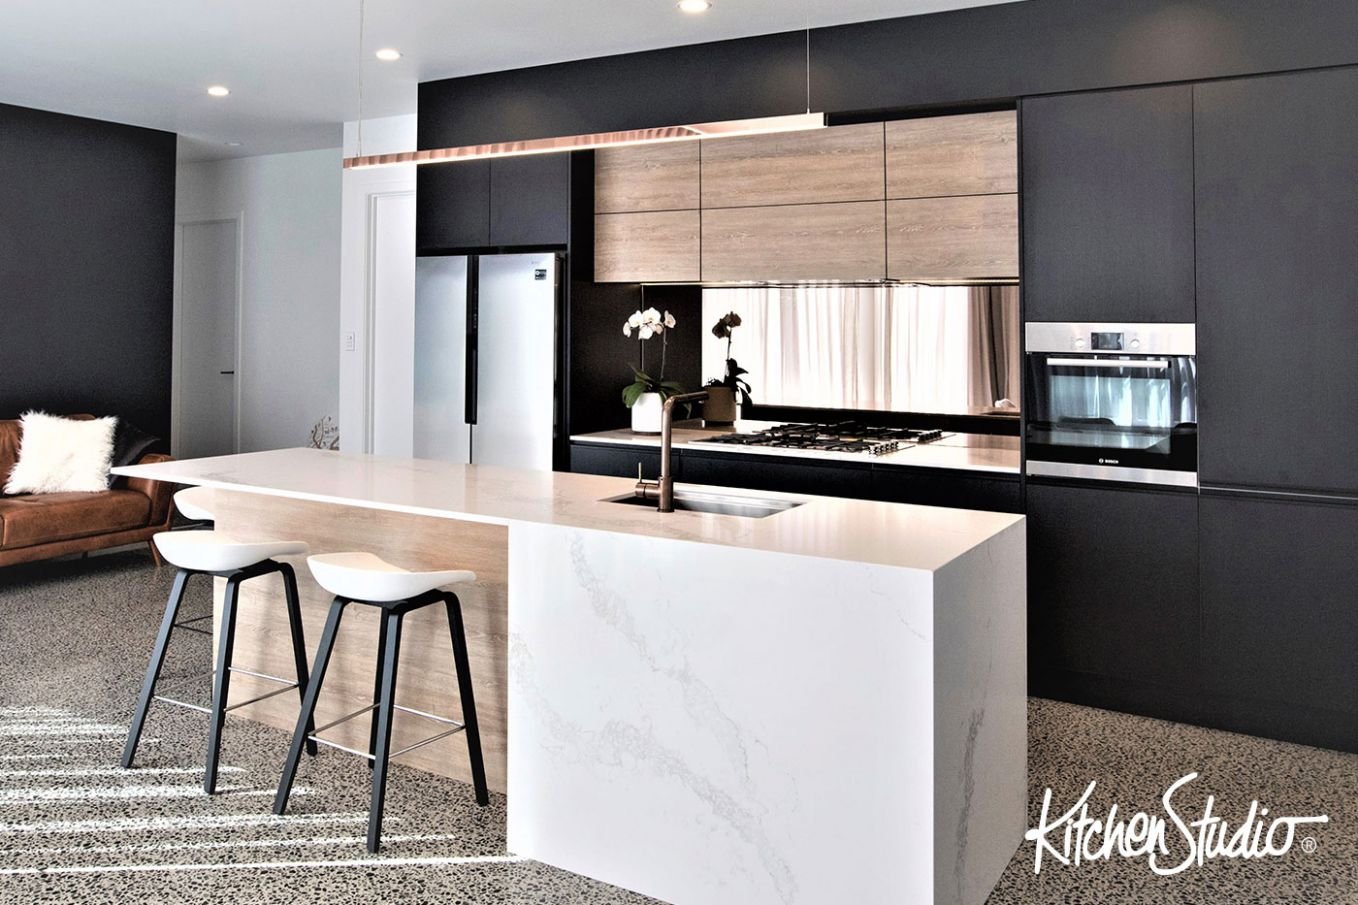 Kitchen Design Gallery • Be Inspired by Kitchen Studio - kitchen ideas nz